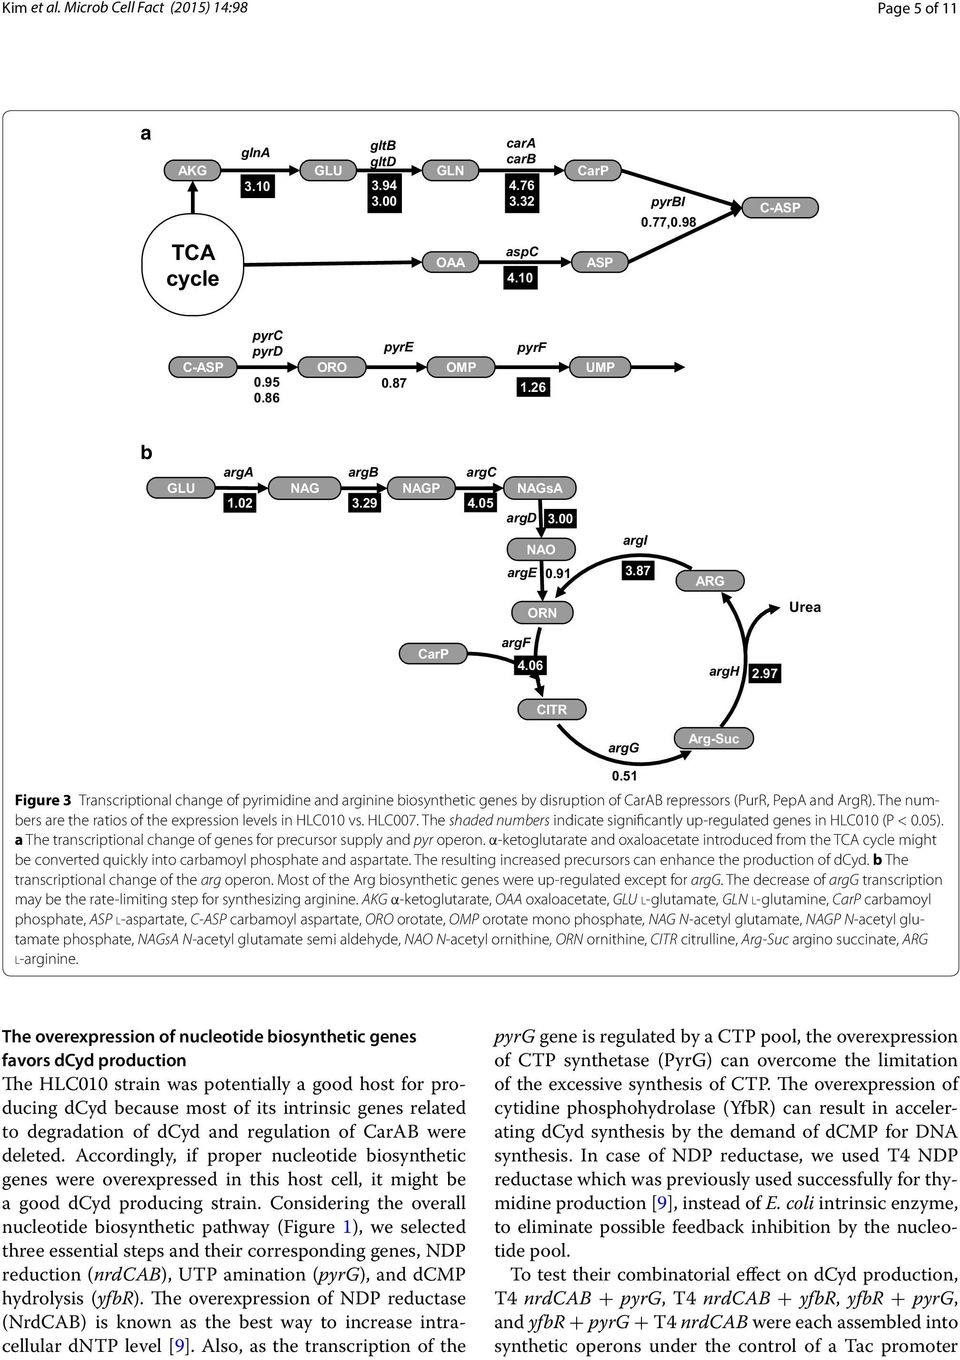 51 Figure 3 Transcriptional change of pyrimidine and arginine biosynthetic genes by disruption of CarAB repressors (PurR, PepA and ArgR).